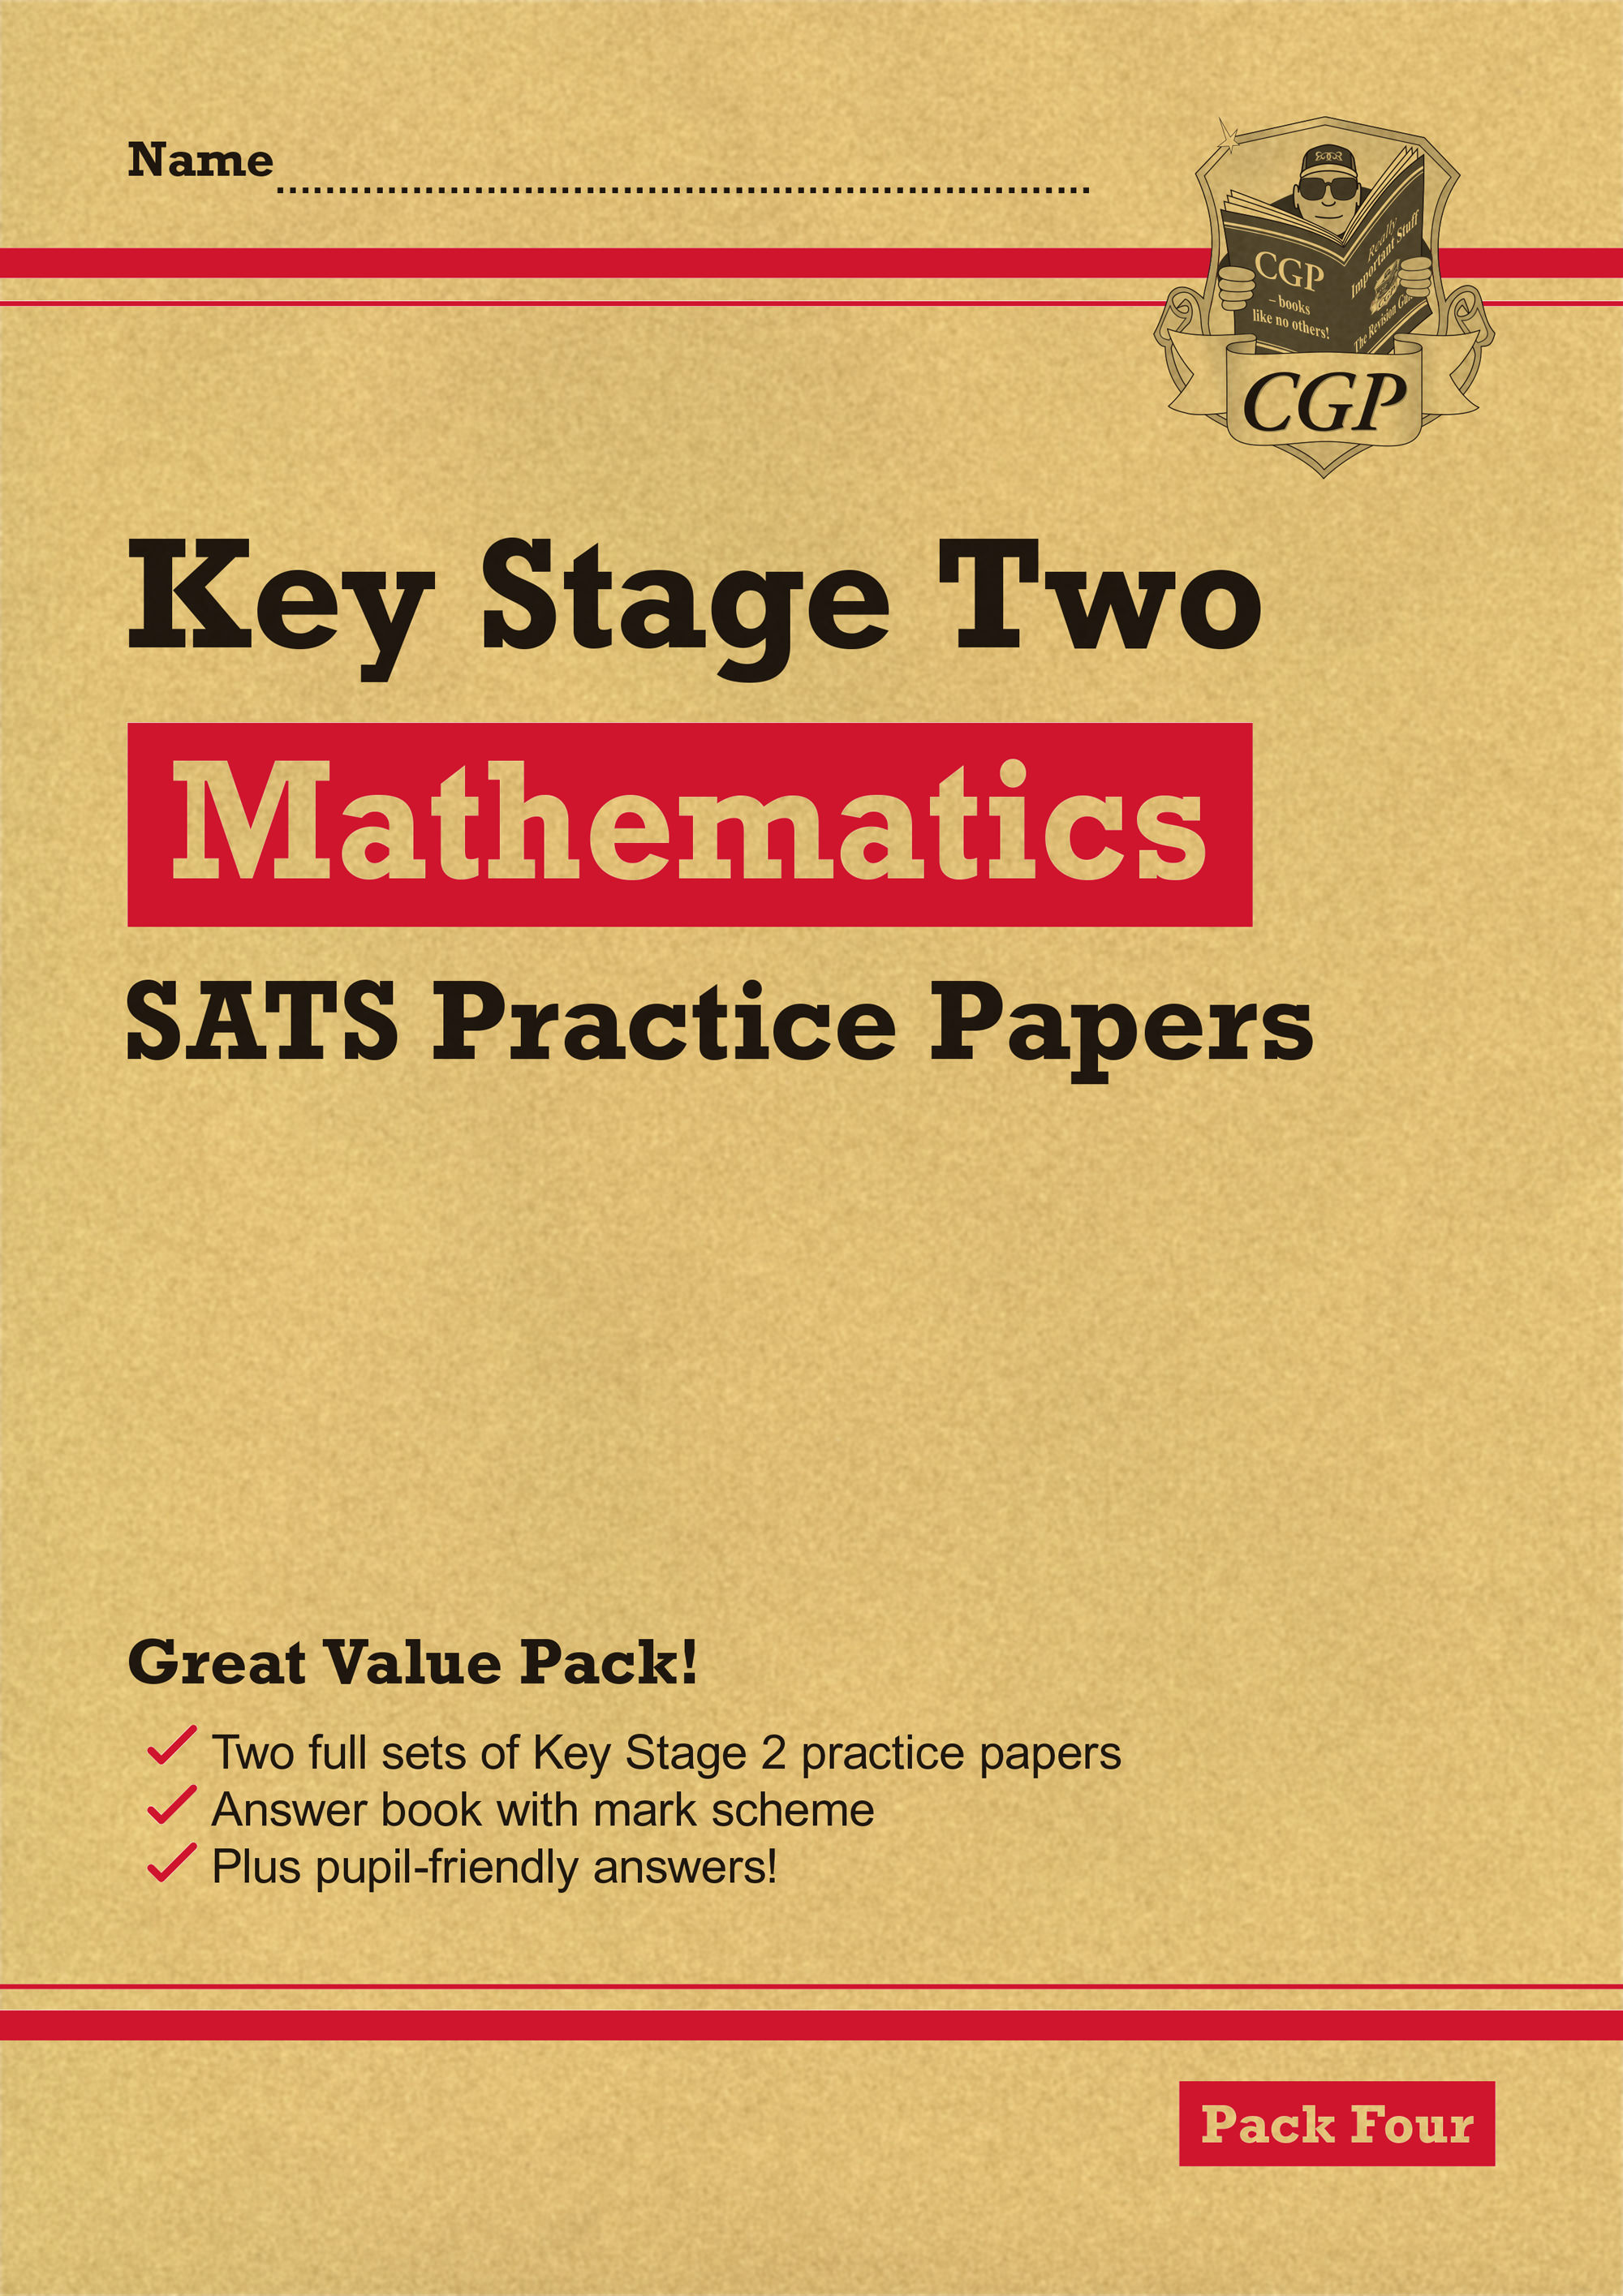 MHRP27 - New KS2 Maths SATS Practice Papers: Pack 4 (for the 2019 tests)